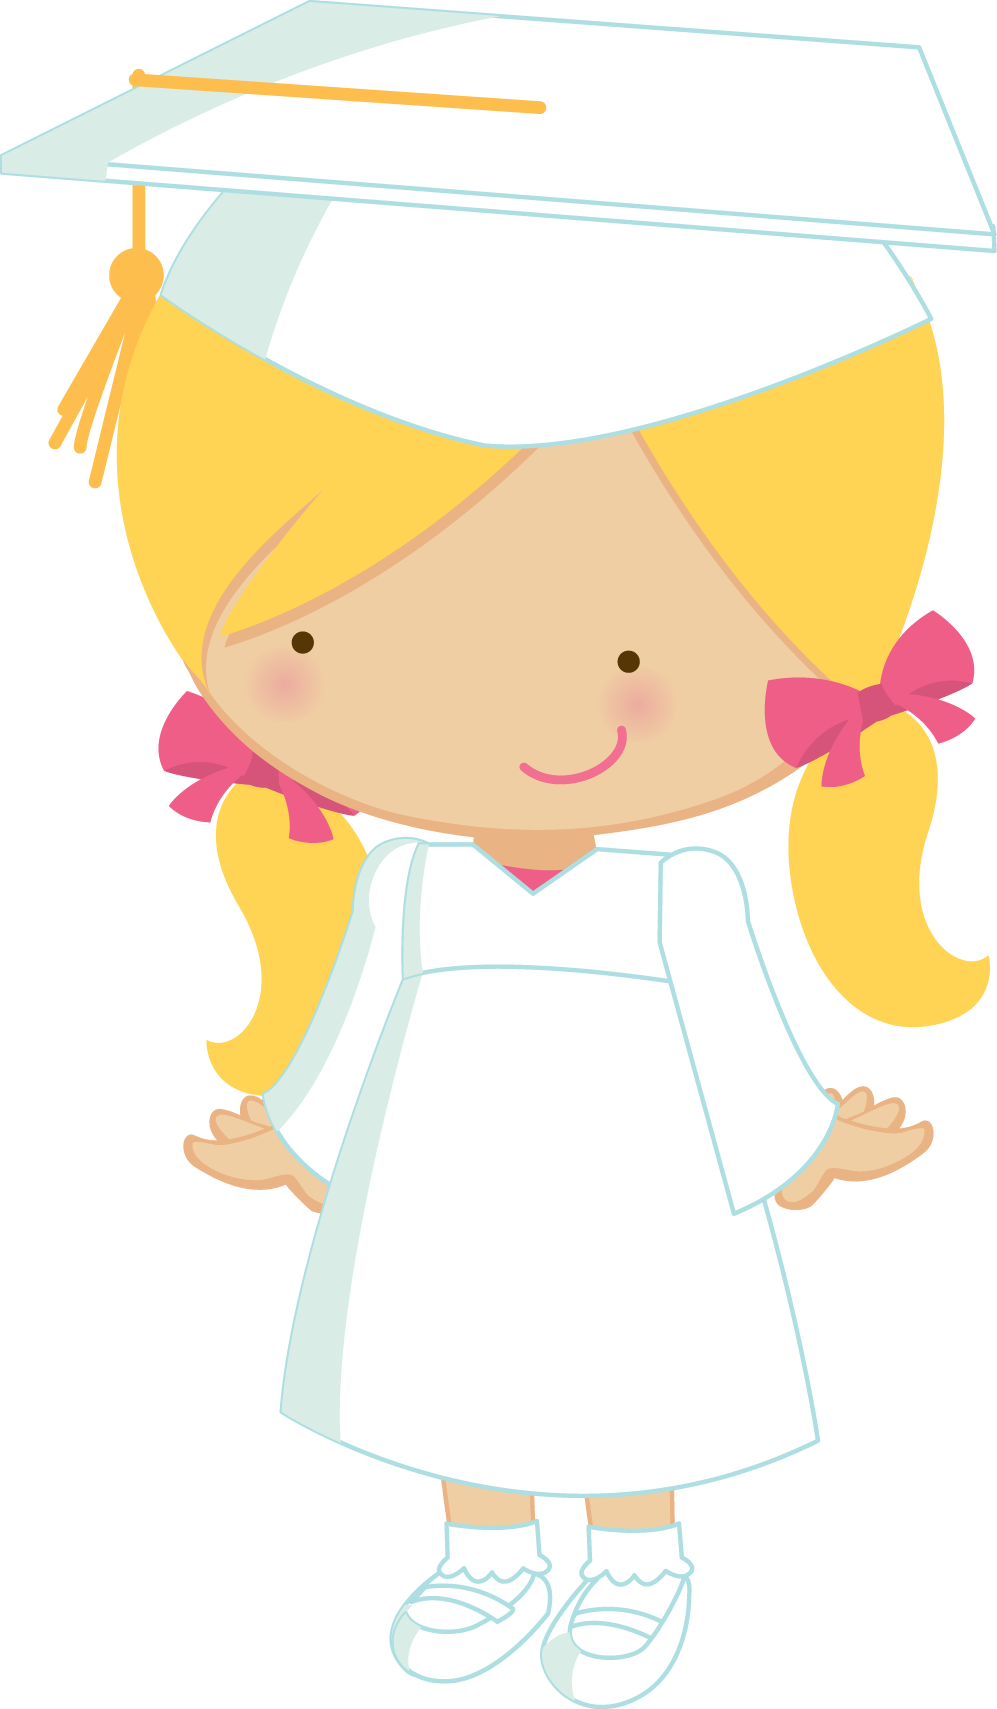 Stamp clipart solution. Little graduates zwd girl